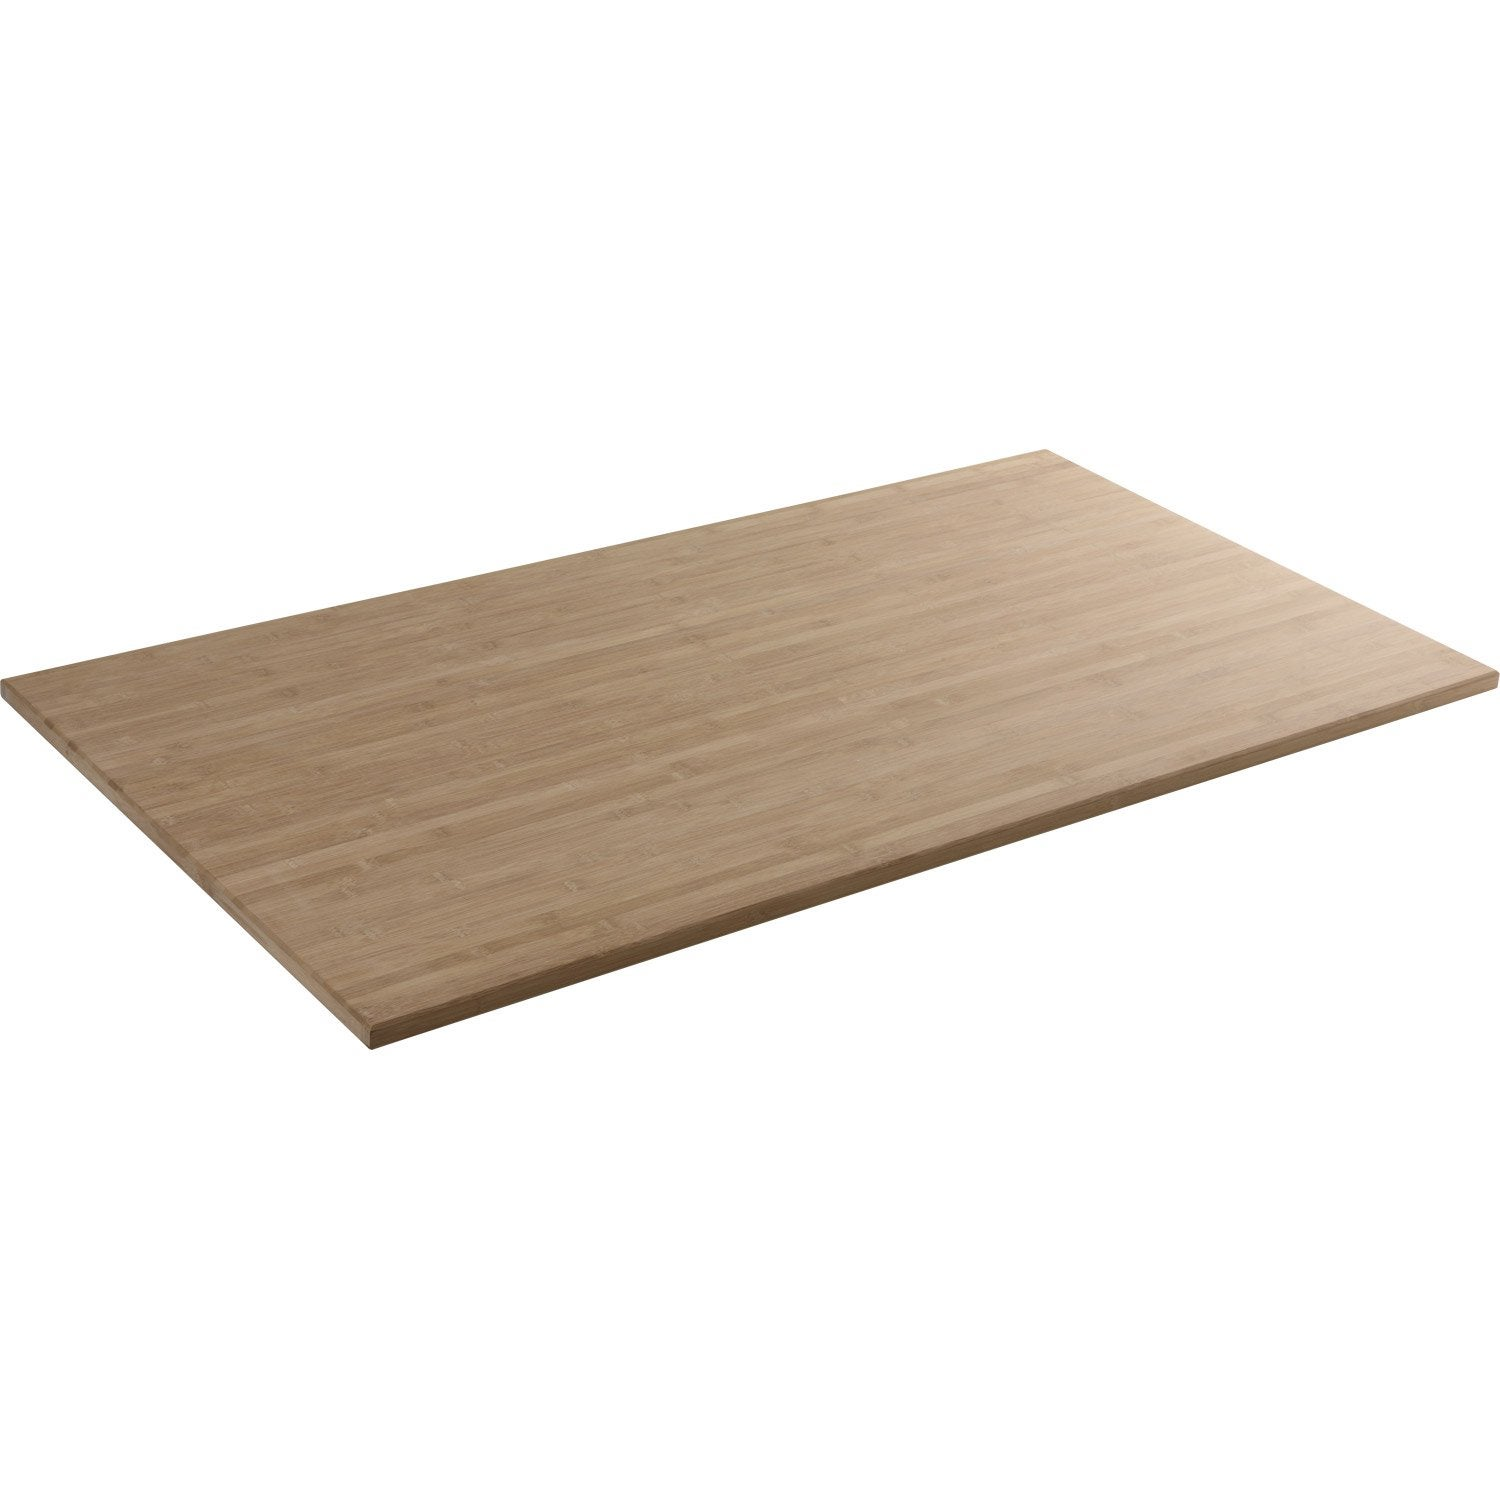 Plateau de table bois massif x cm mm for Plateau table exterieur